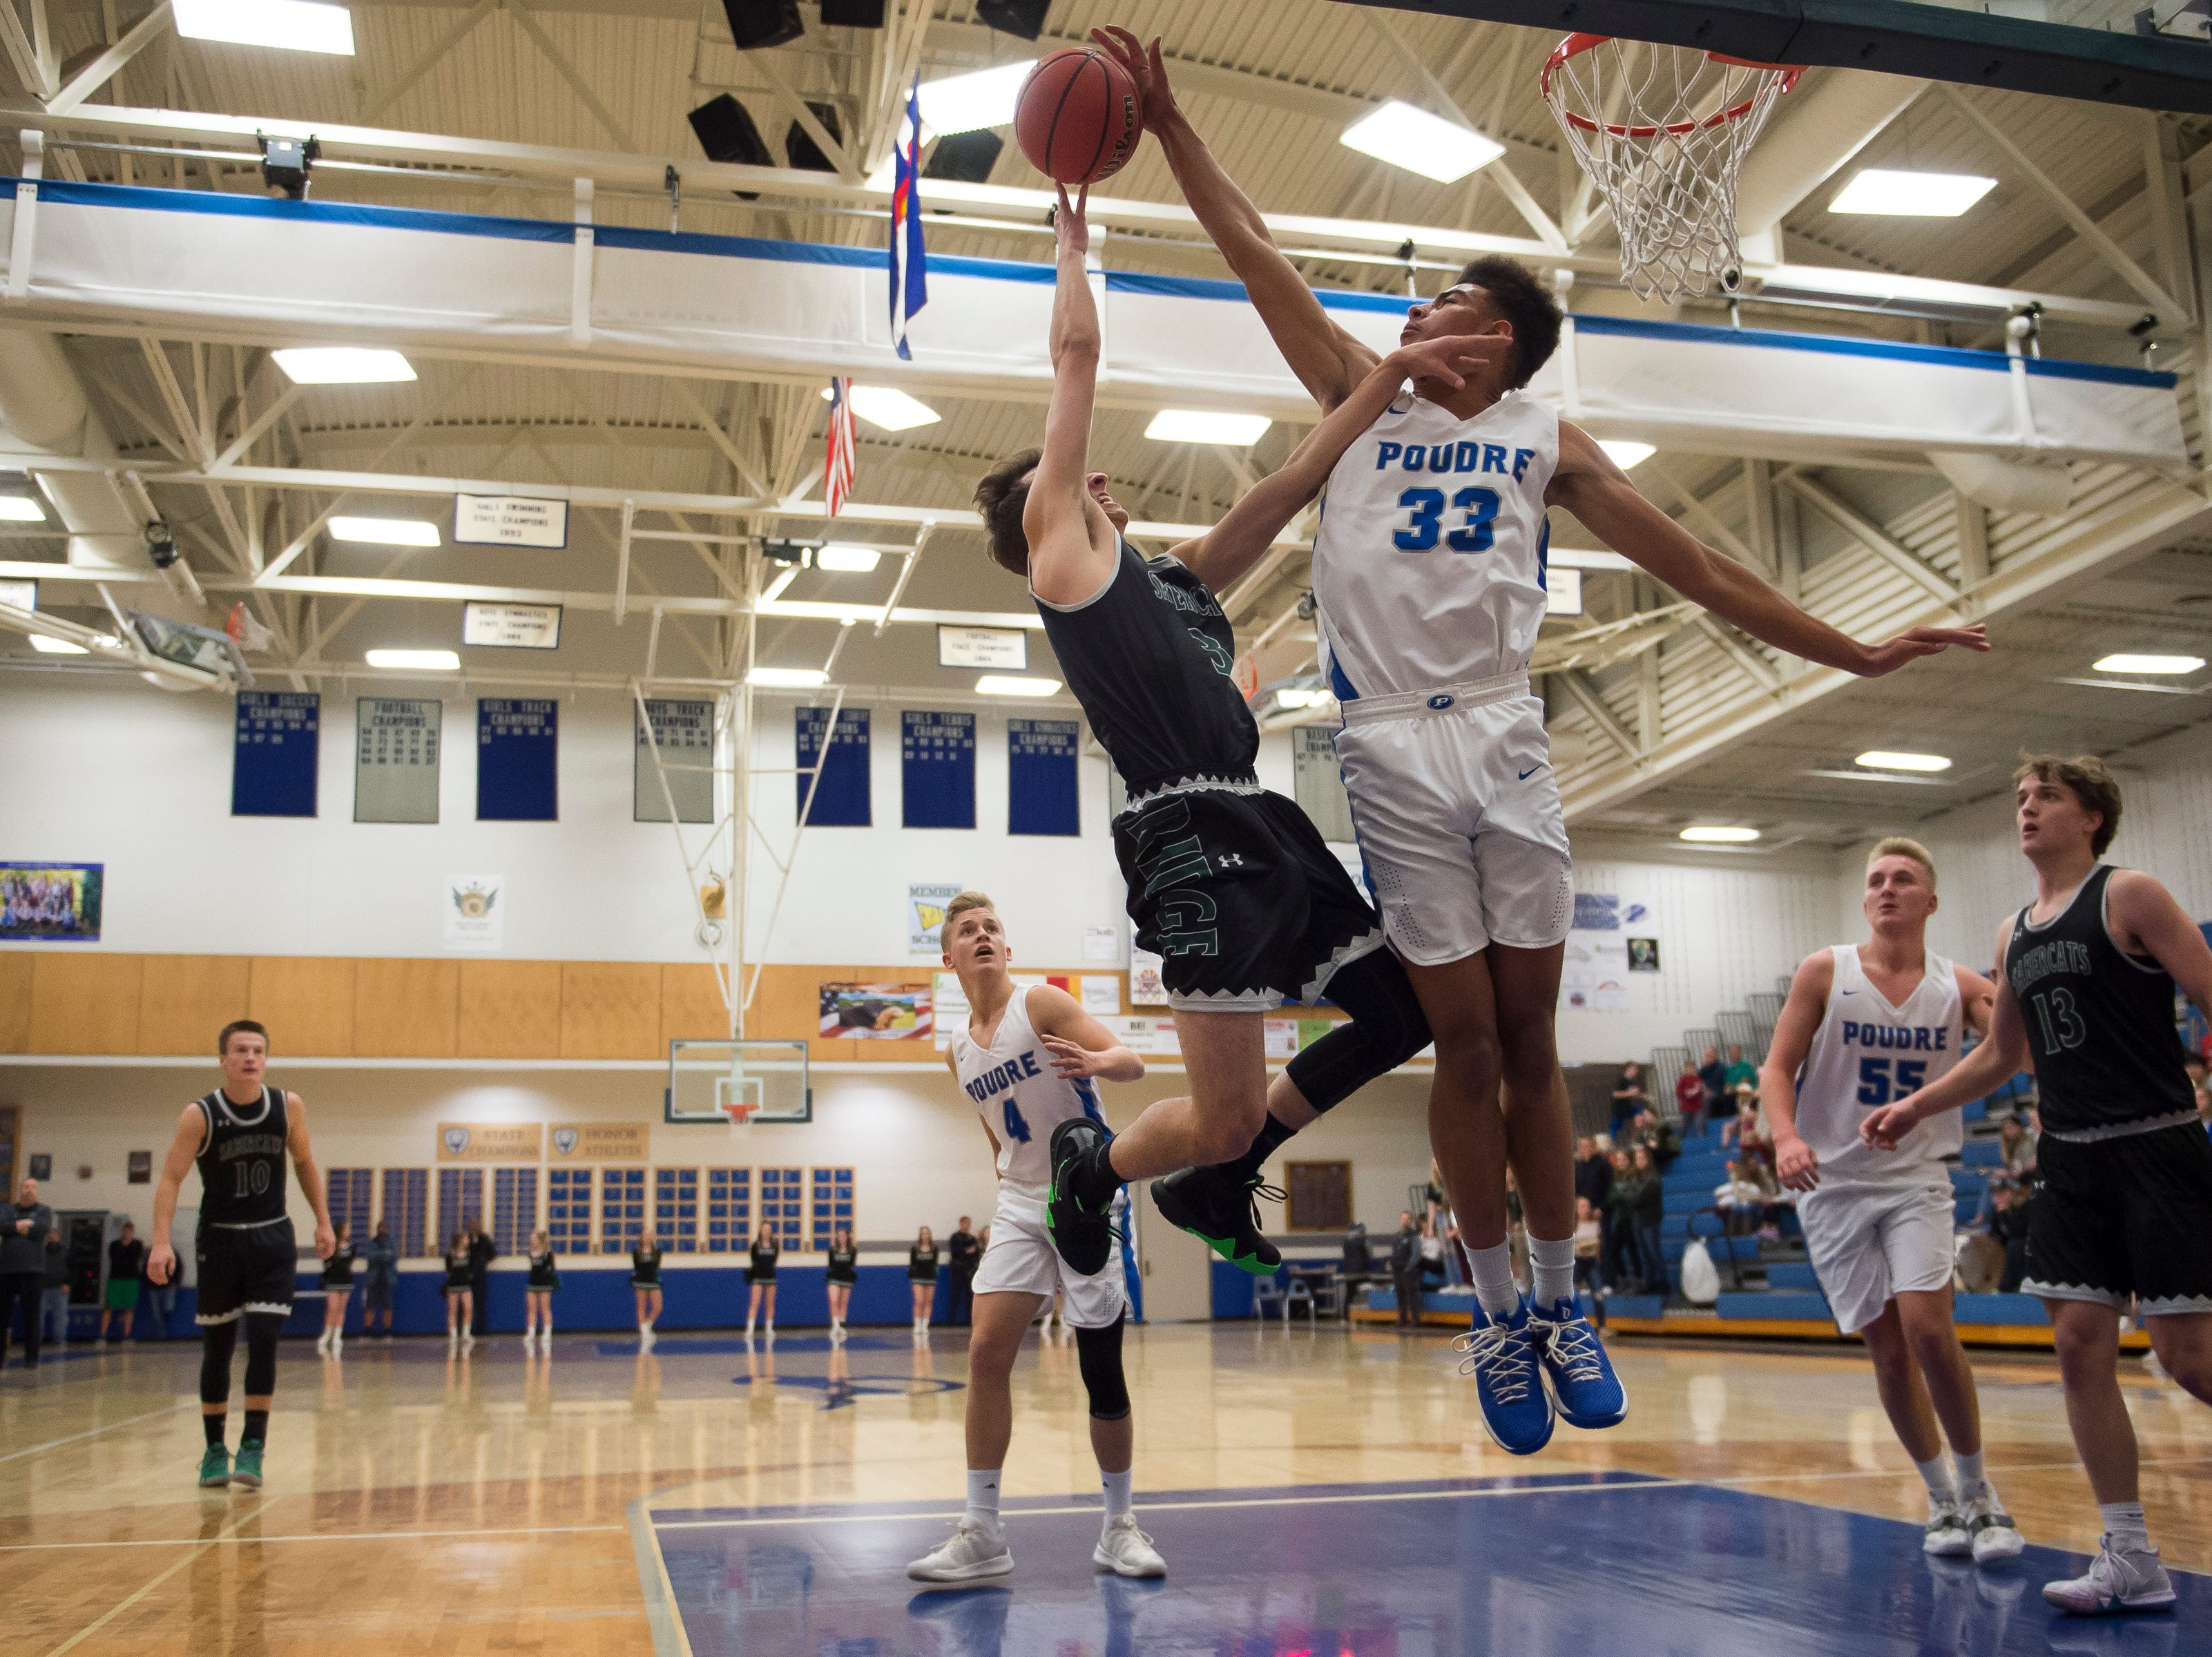 Poudre High School senior Damian Forrest (33) blocks a shot by Fossil Ridge High School senior Tommy Croft (3) on Tuesday, Dec. 4, 2018, at Poudre High School on Fort Collins, Colo.